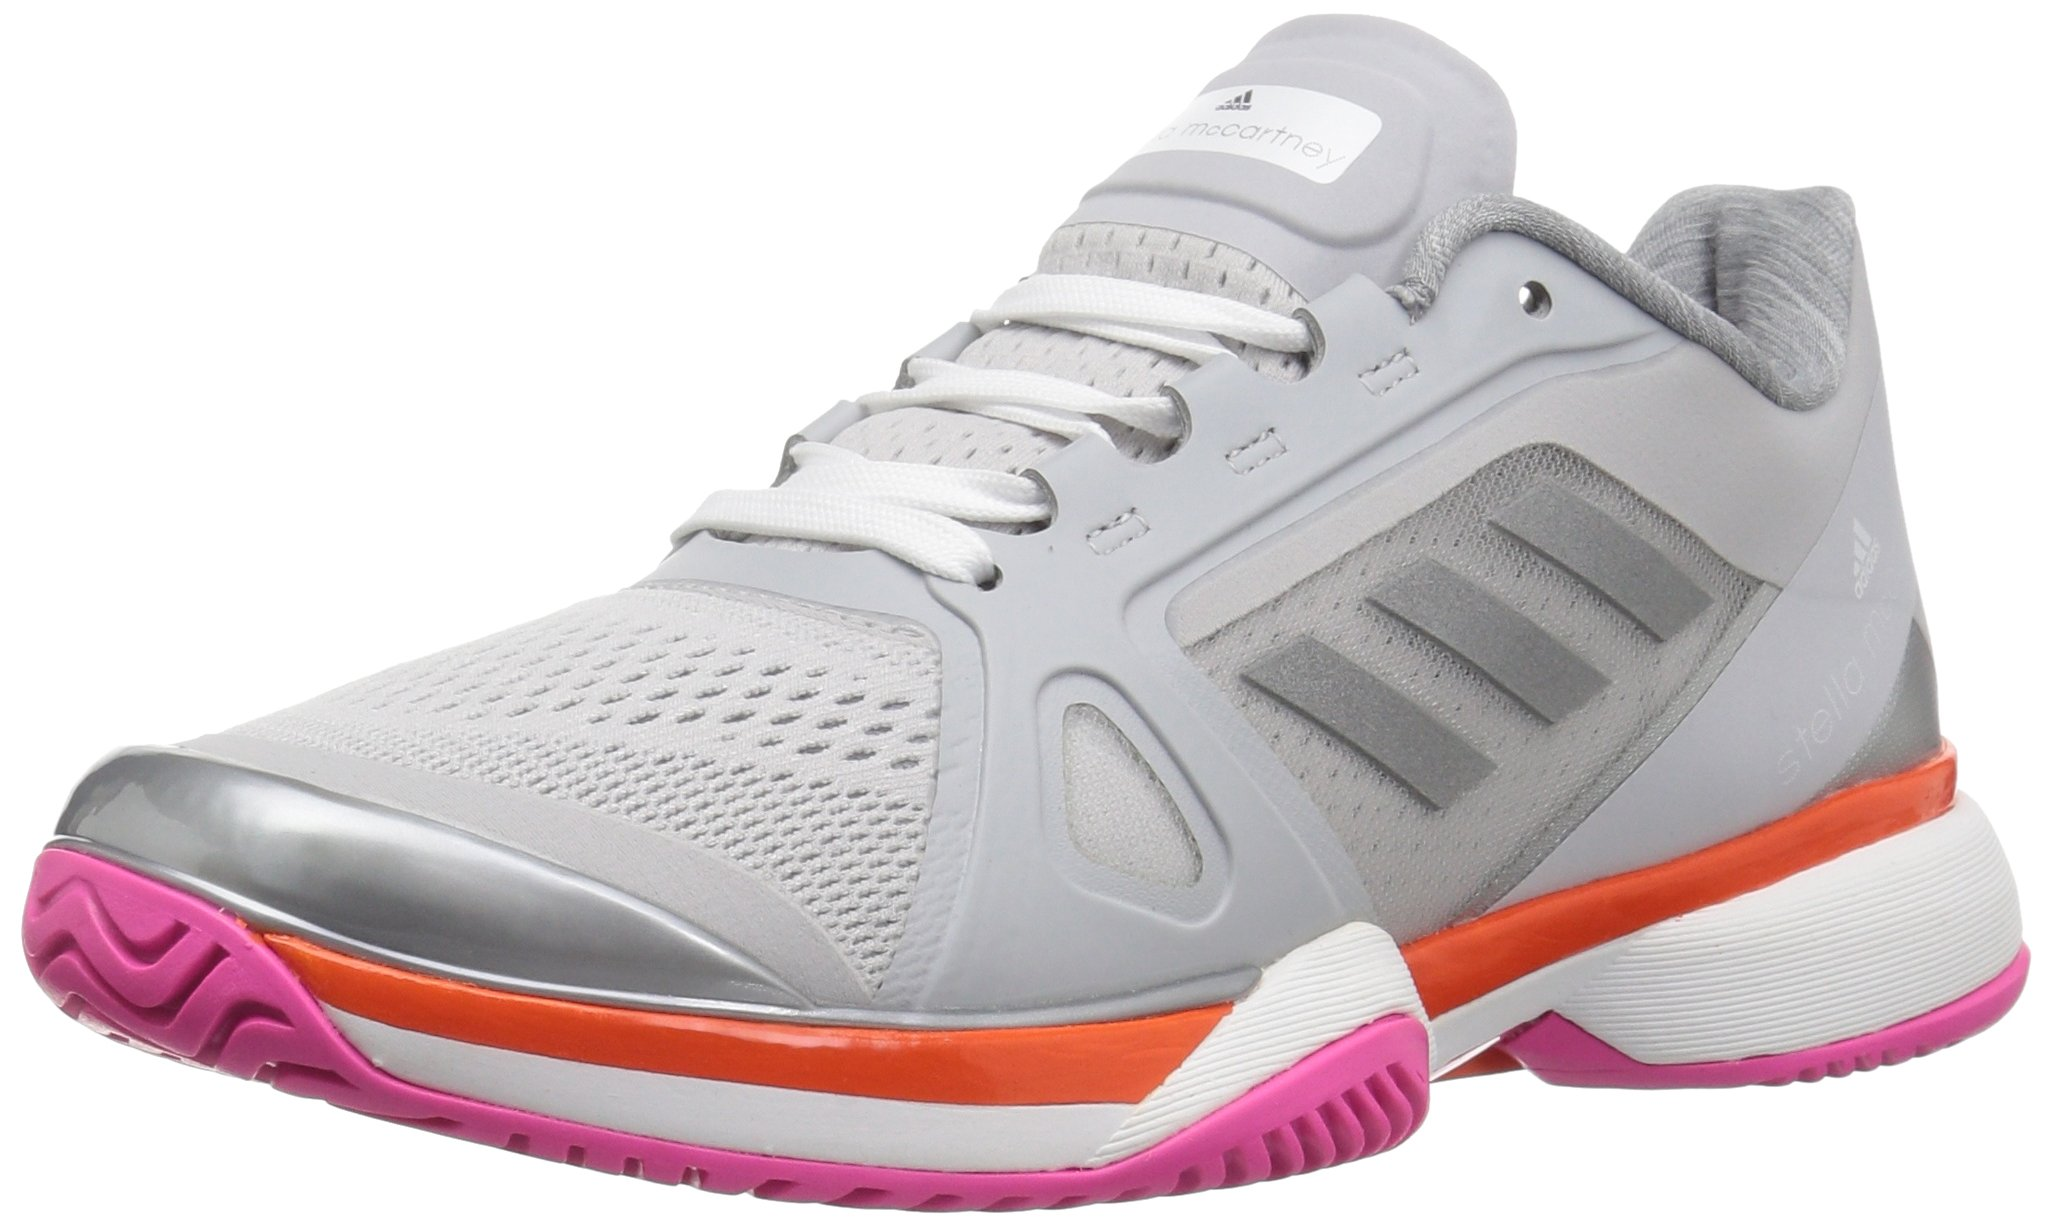 adidas Women's Shoes | Asmc Barricade 2017 Tennis, Light Solid Grey/White/Radiant Orange, (7 M US)